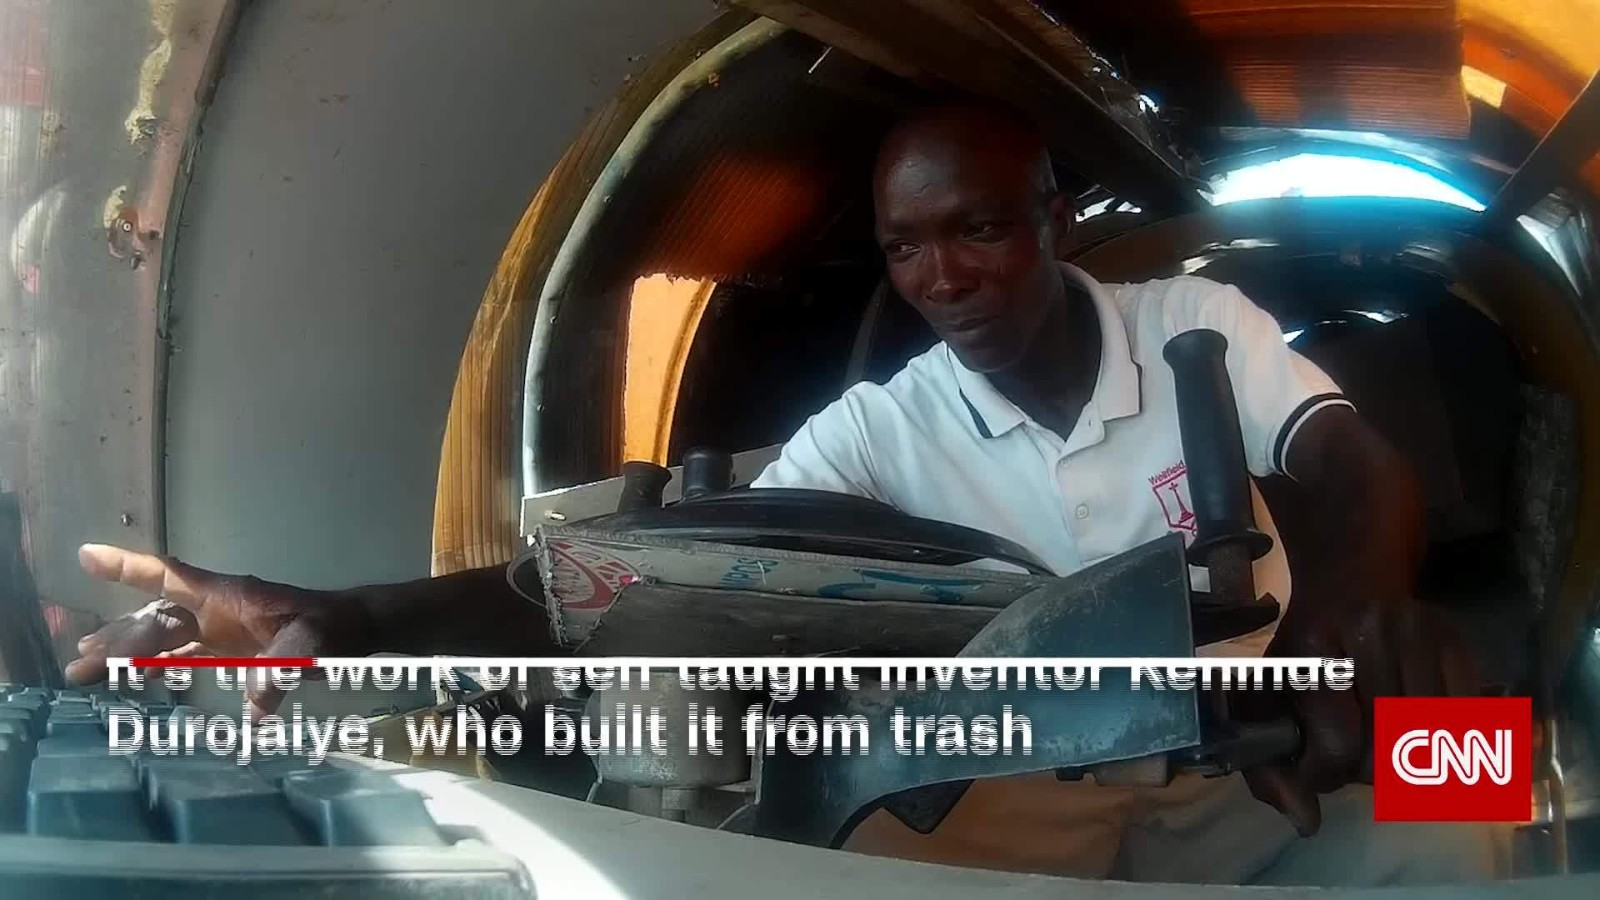 The Nigerian inventor building a jet car - CNN Video